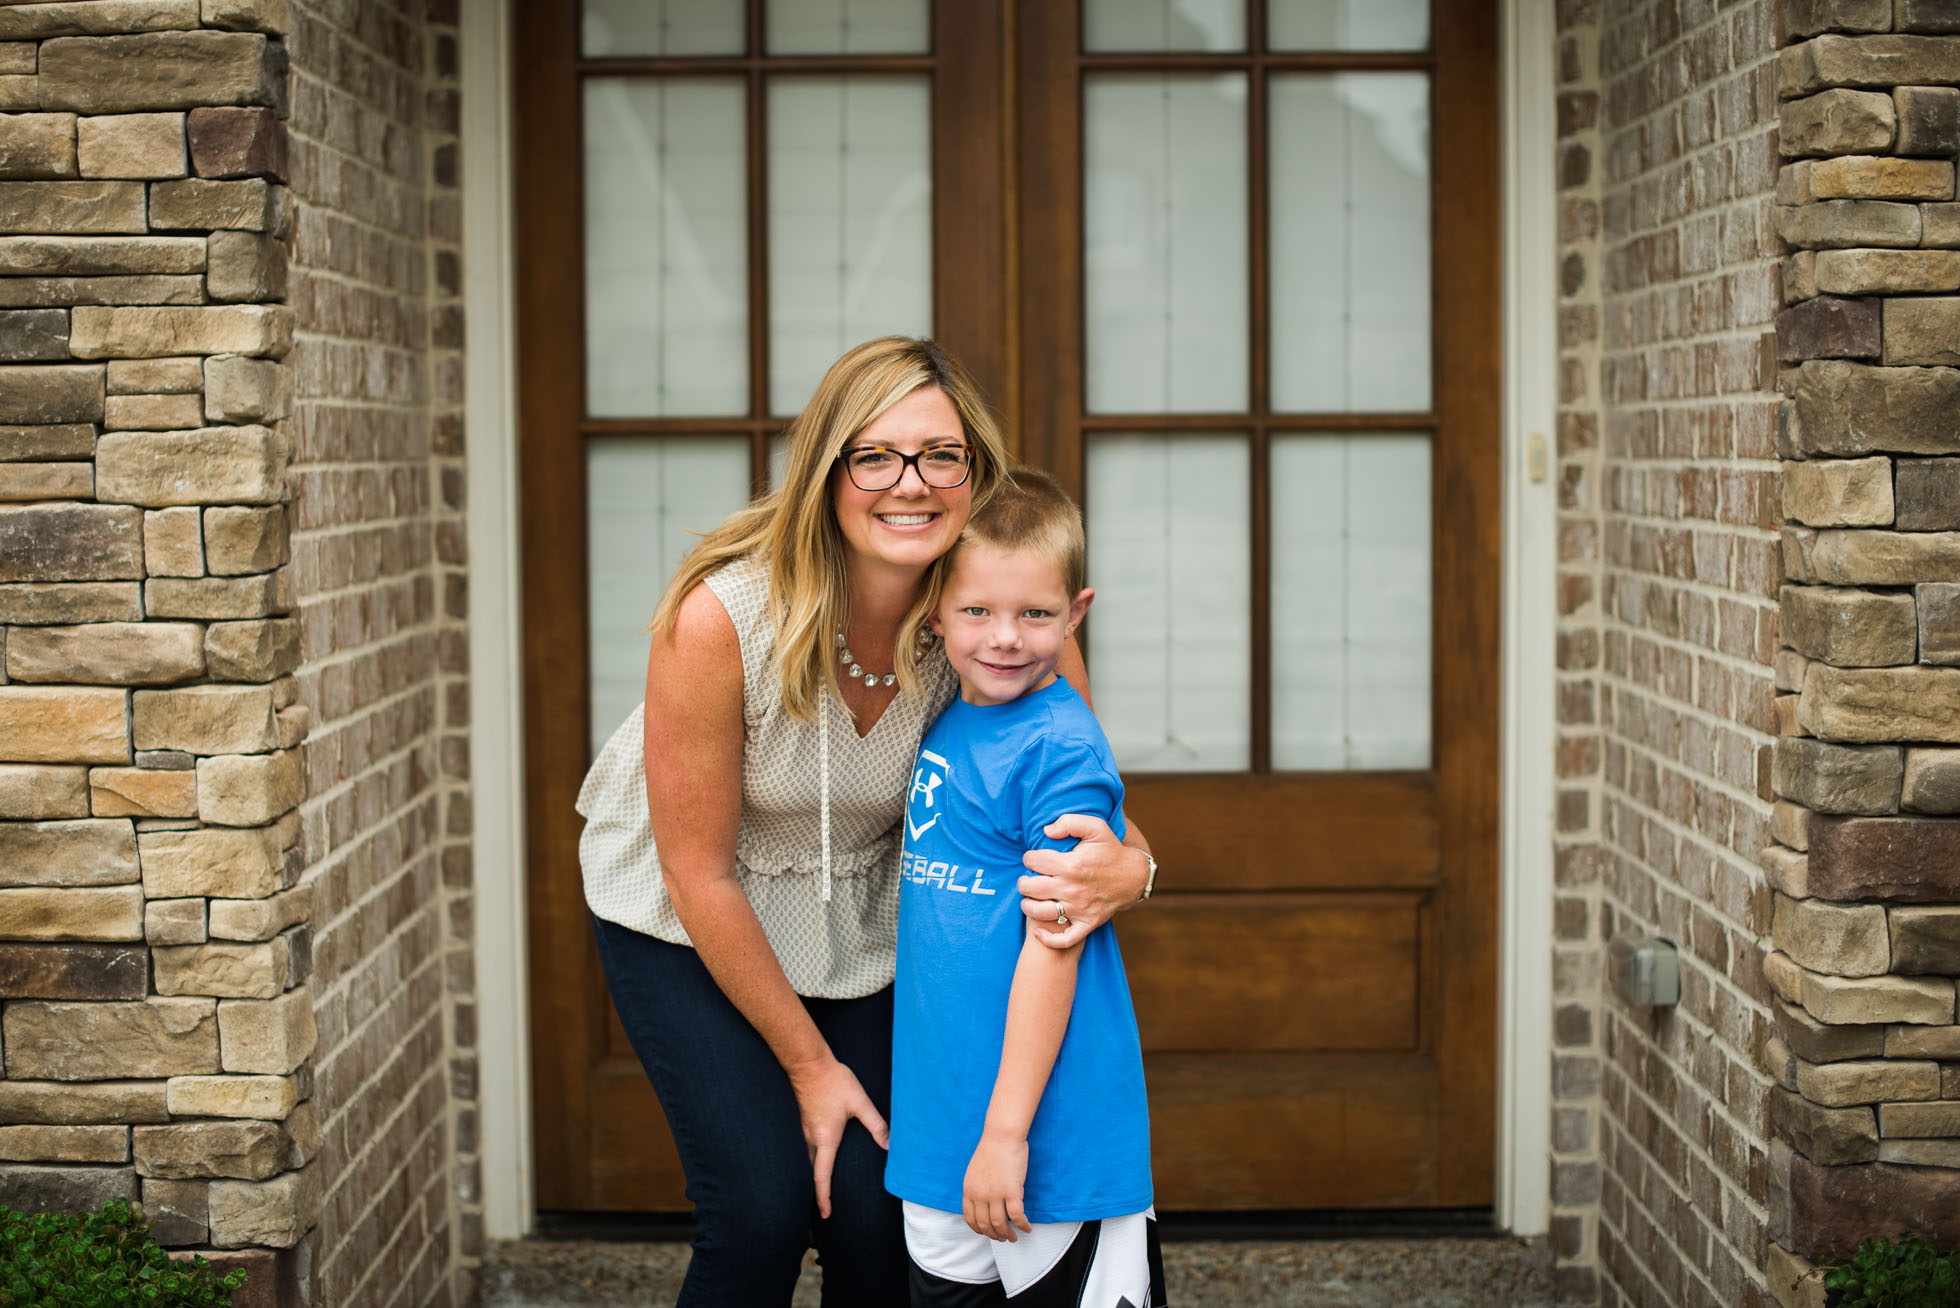 Mom and son first day of school photos